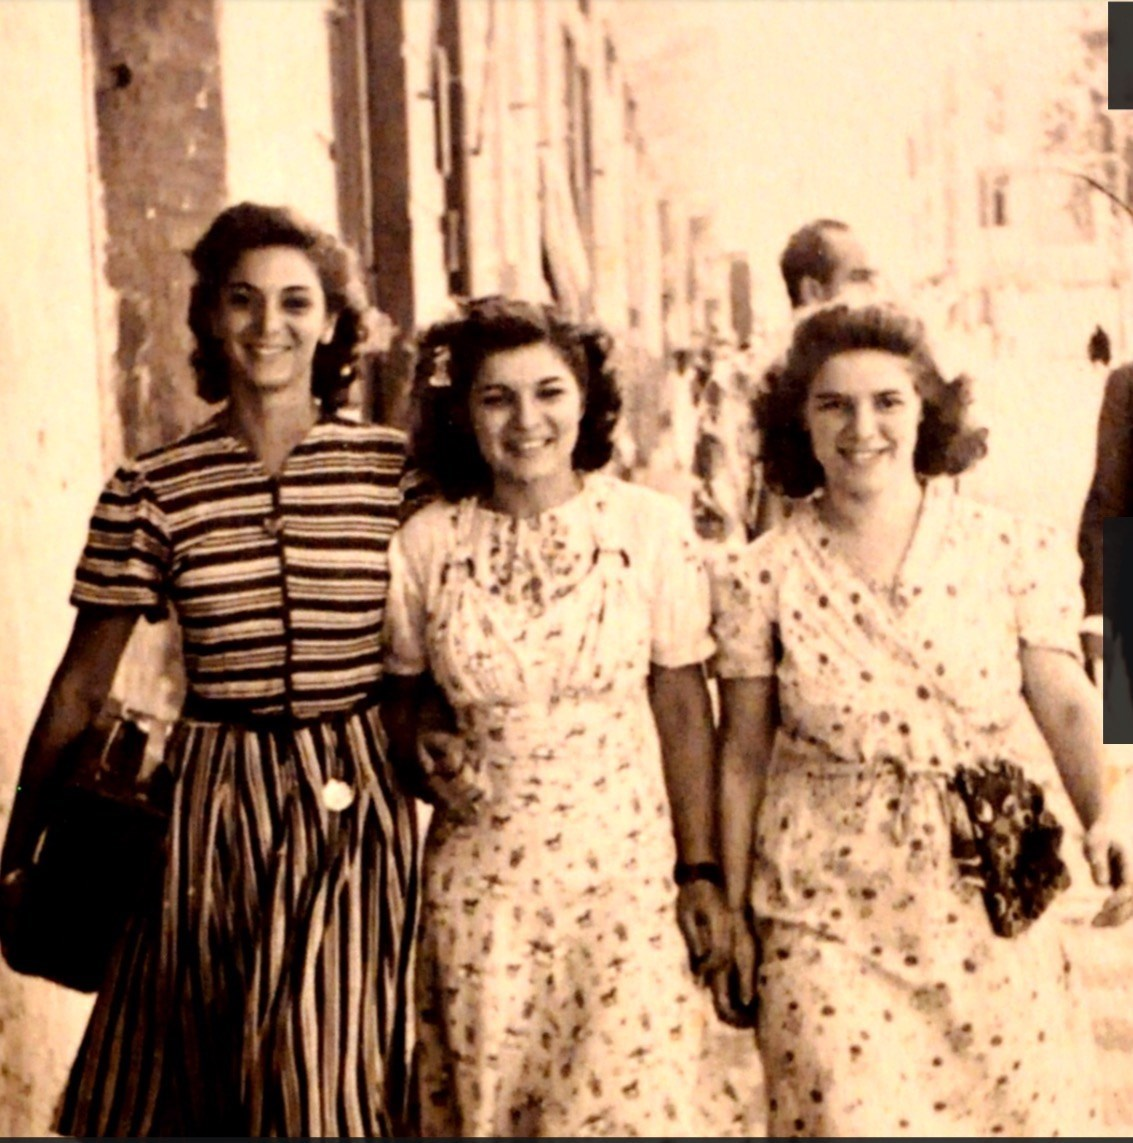 Yvette, Mimi(Marie), Irma - Reunited again, May they Rest In Peace.